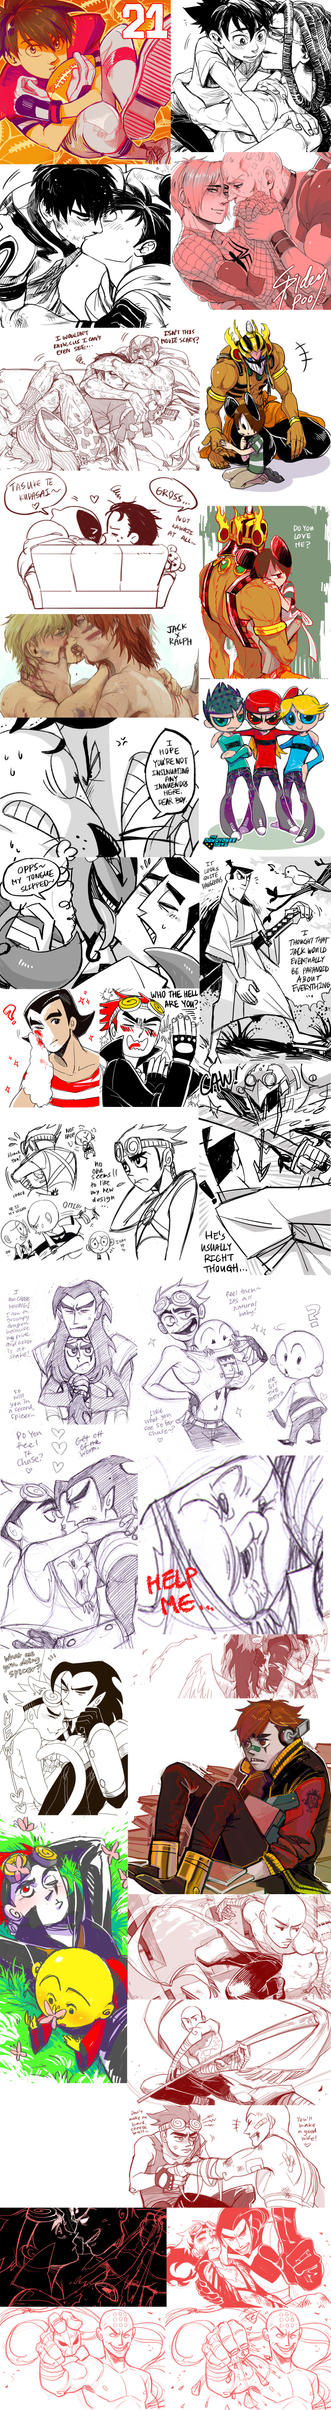 +RANDOM JUNK+ (WARNING CONTAINS YAOI) by C2ndy2c1d